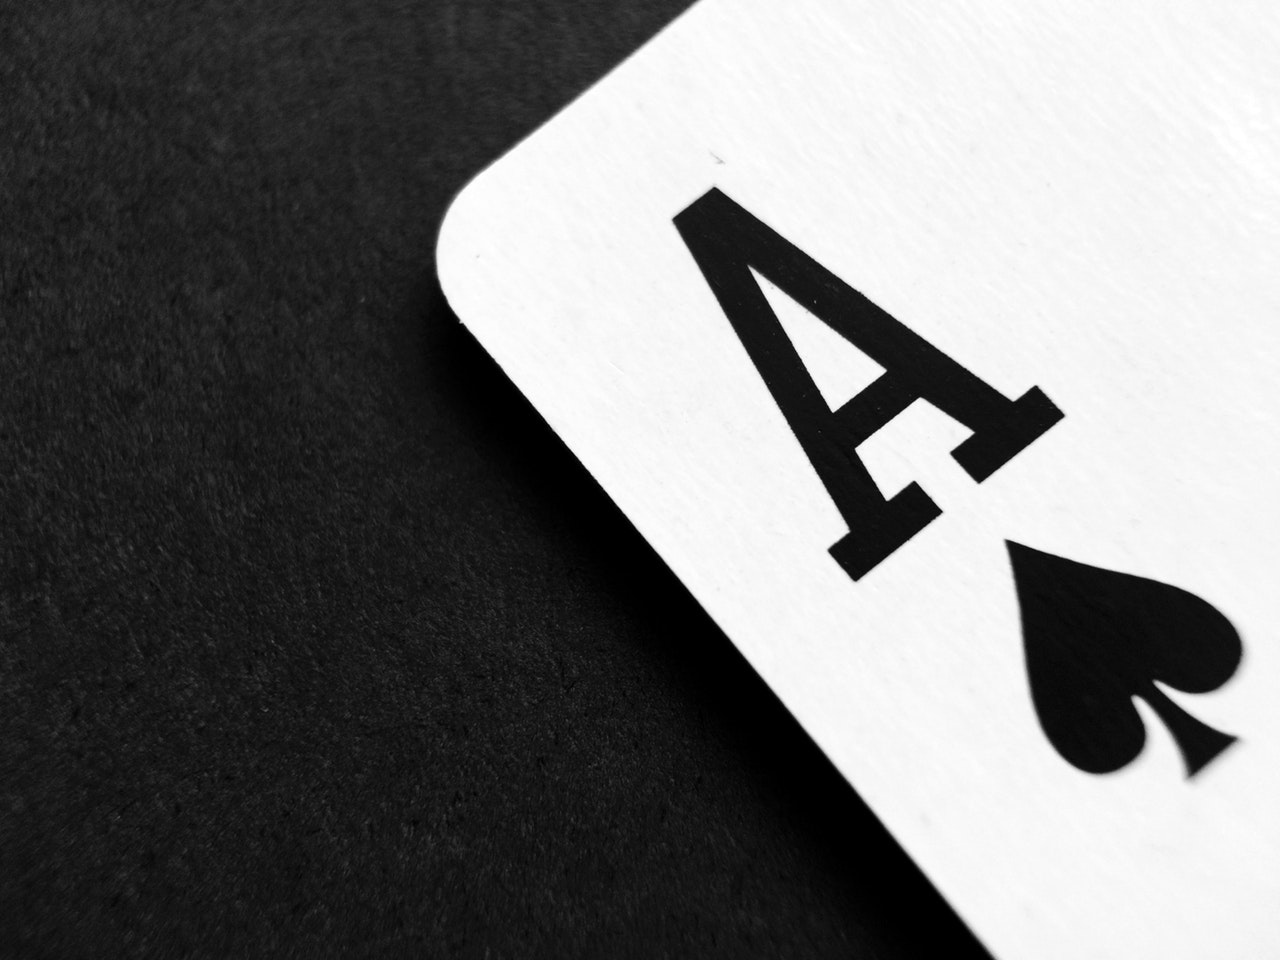 Card Game Enthusiasts Header Image